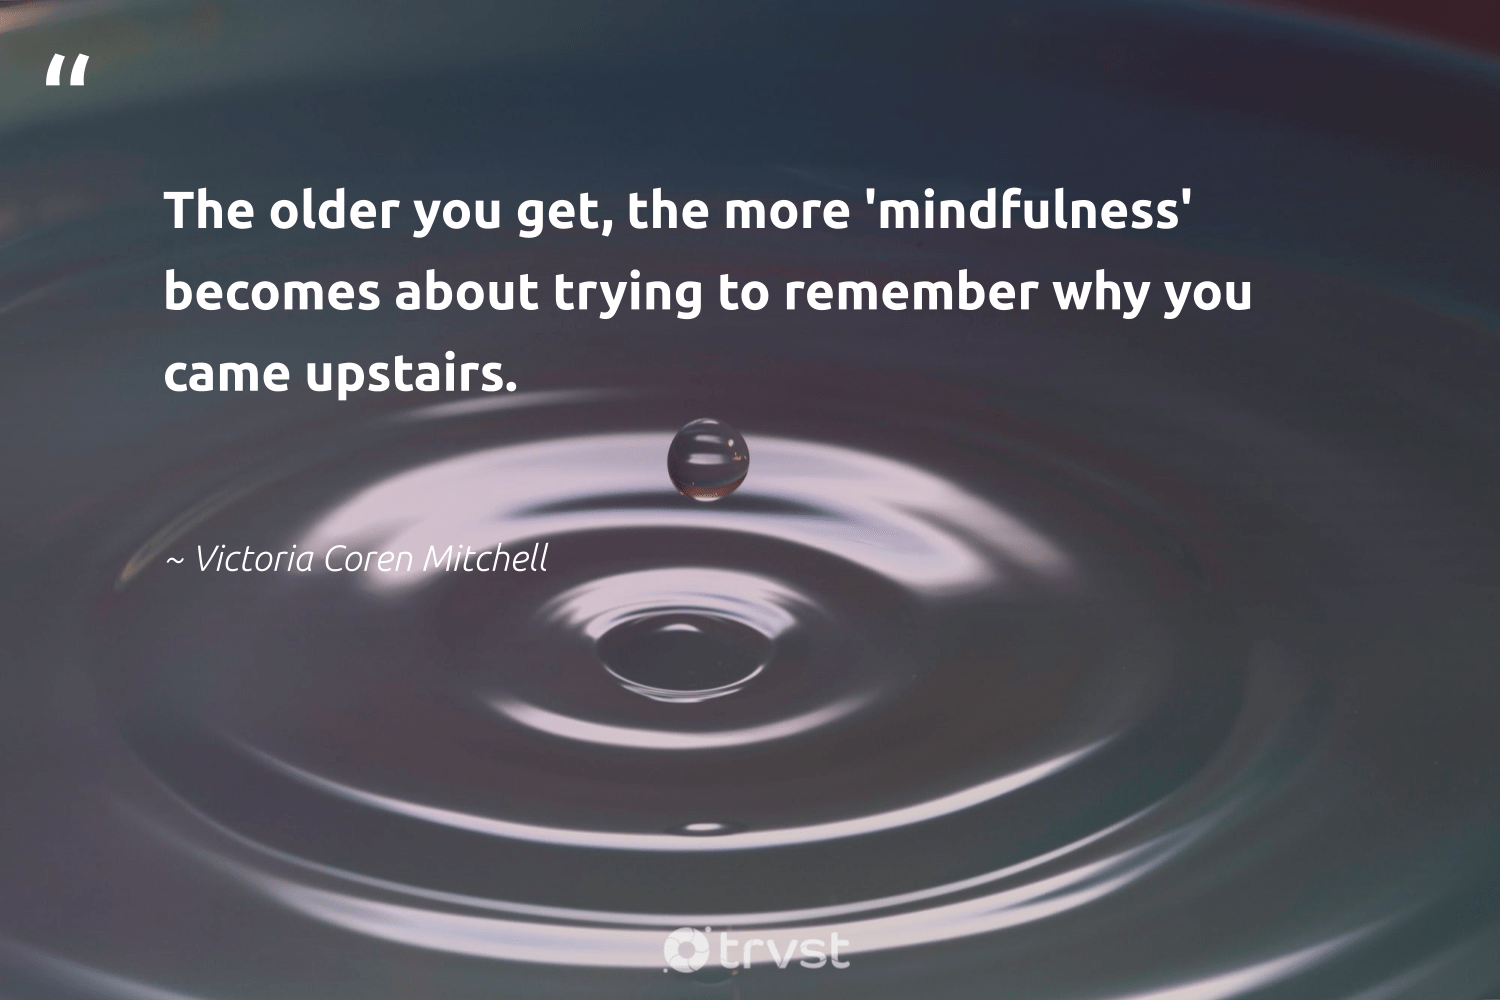 """""""The older you get, the more 'mindfulness' becomes about trying to remember why you came upstairs.""""  - Victoria Coren Mitchell #trvst #quotes #mindfulness #growthmindset #mindset #health #socialchange #meditate #positivity #nevergiveup #bethechange #meditation"""